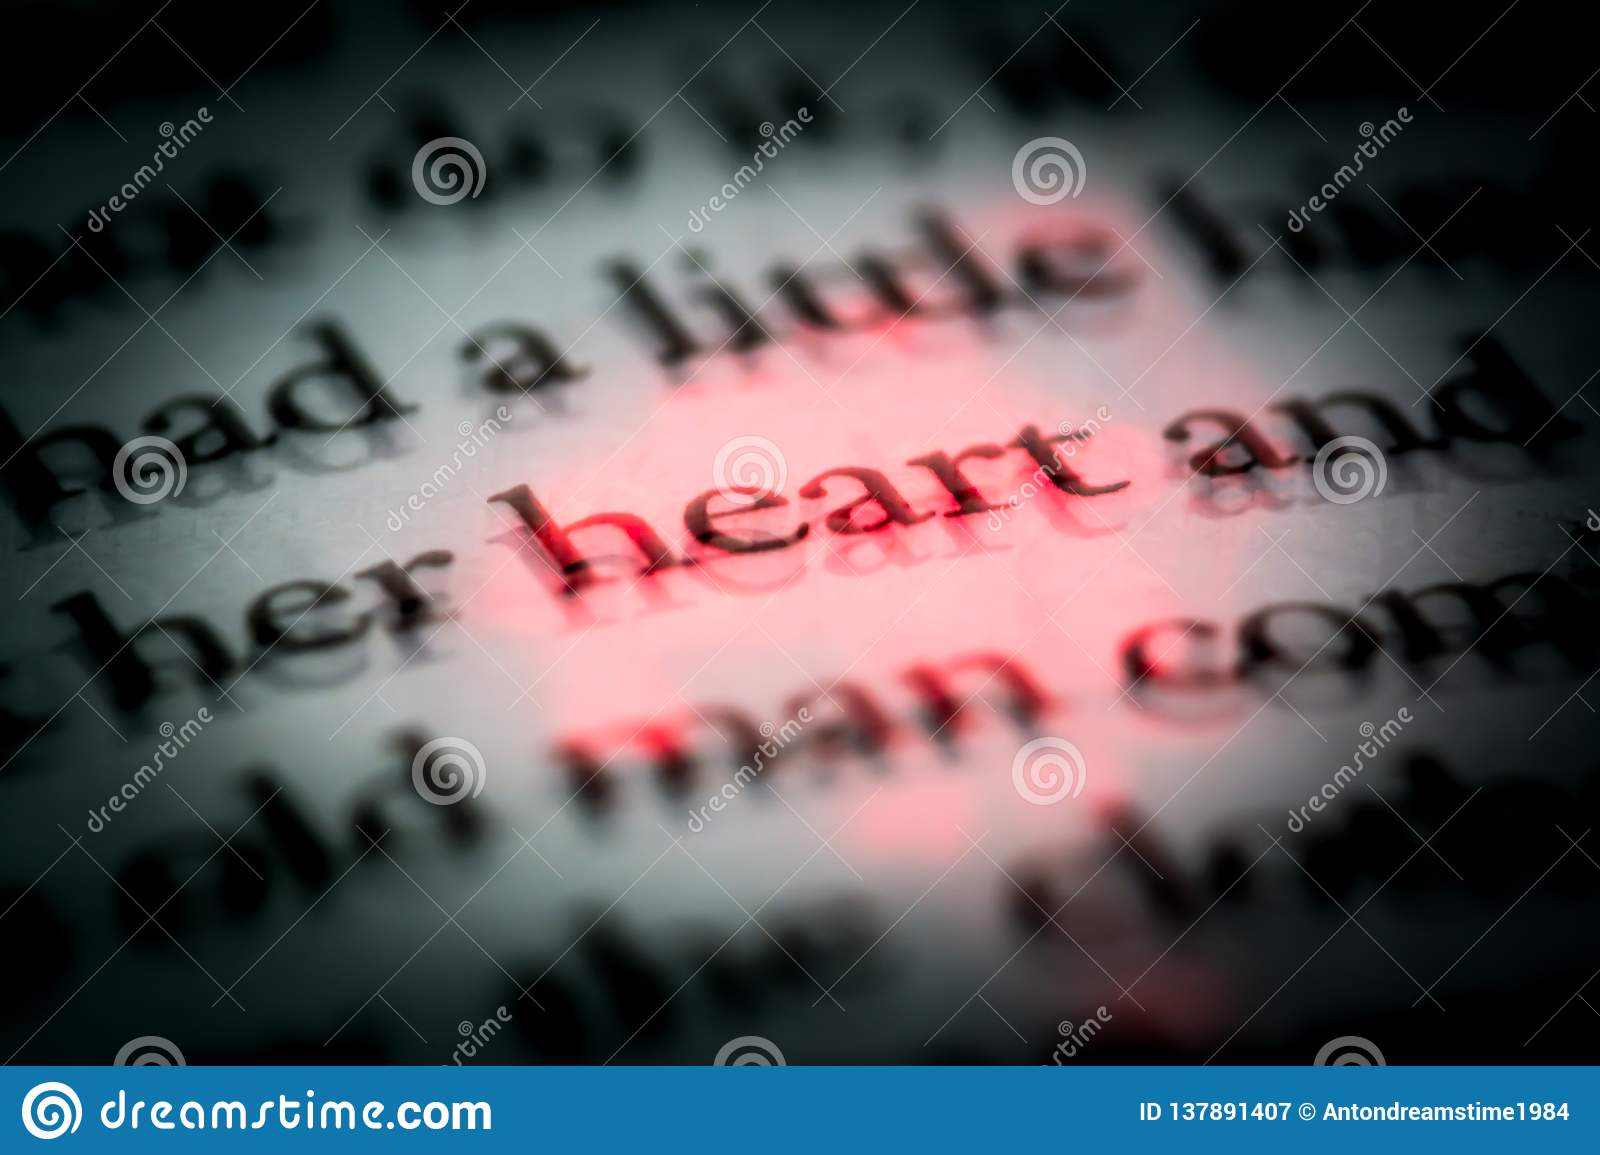 The word heart in a book in English close up, macro, highlighted in red. The text in the book with 3D effect.